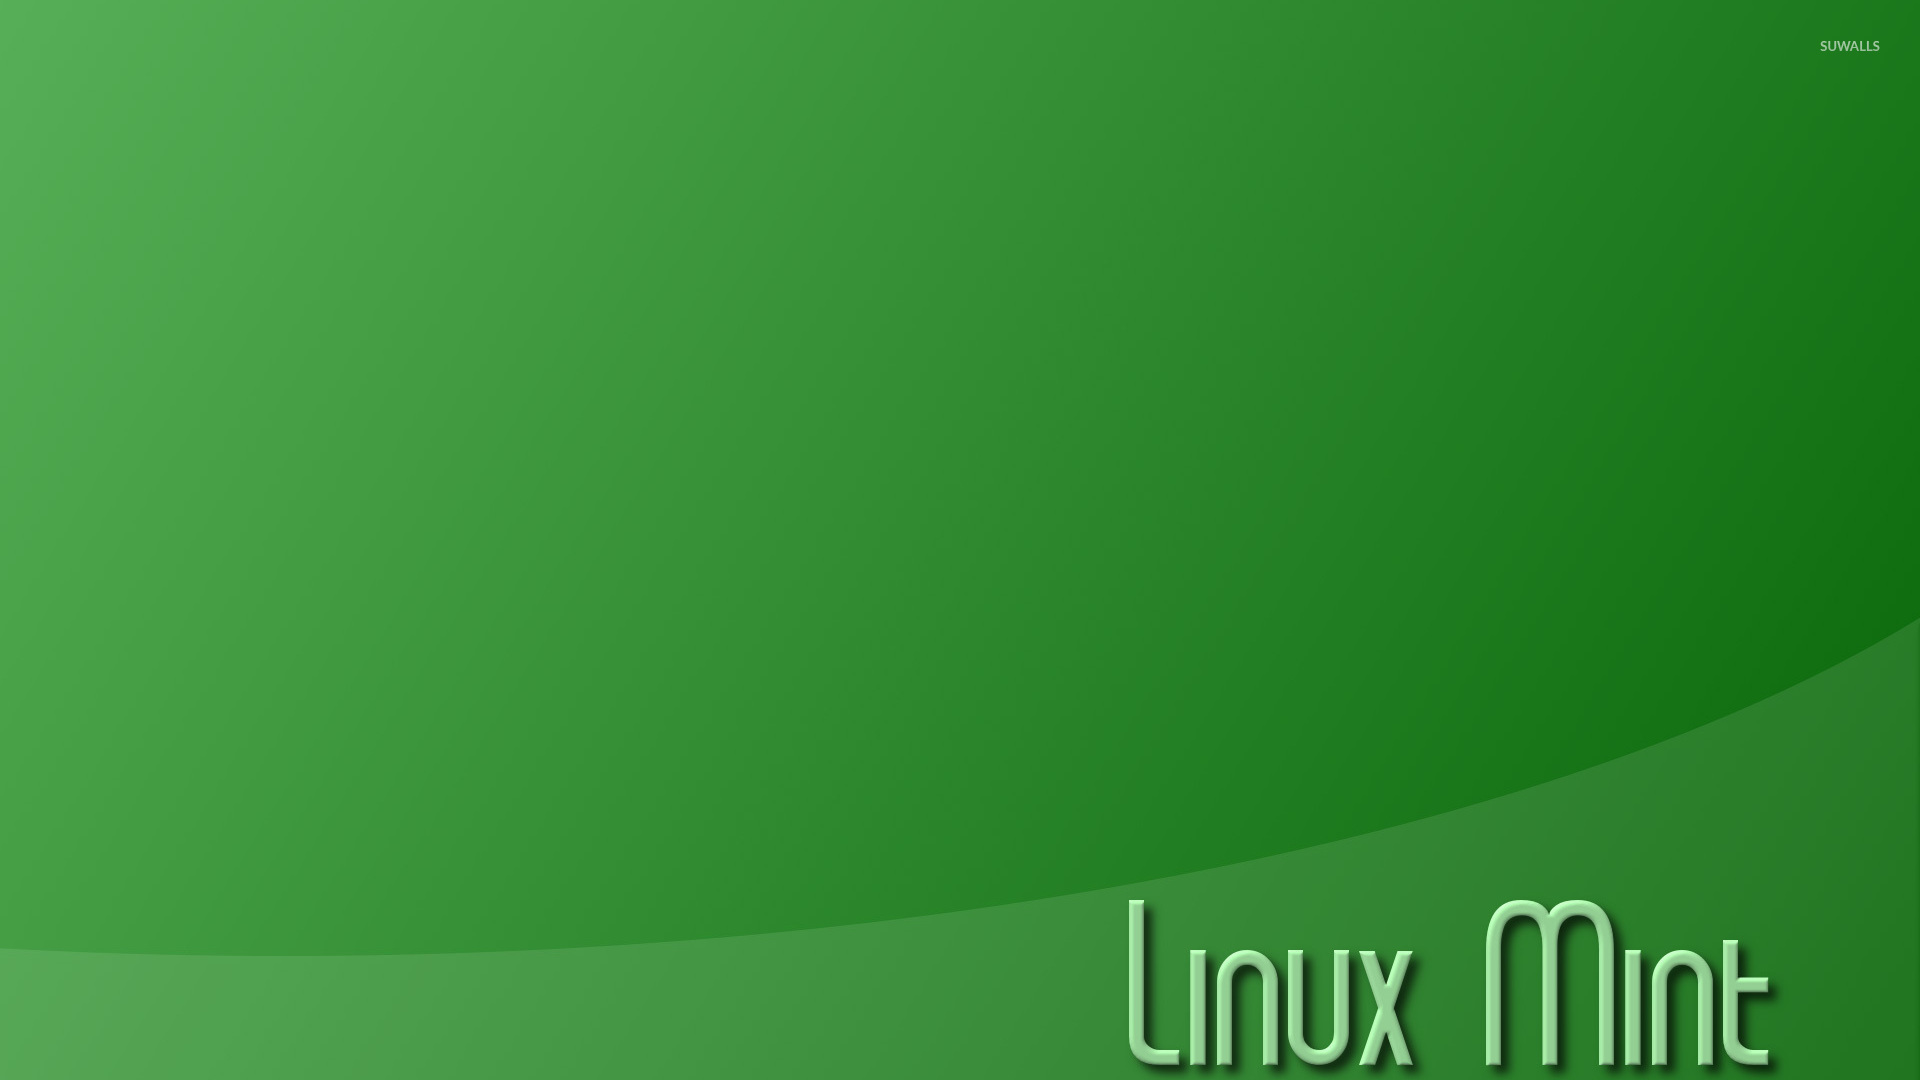 linux mint 7 wallpaper computer wallpapers 8144